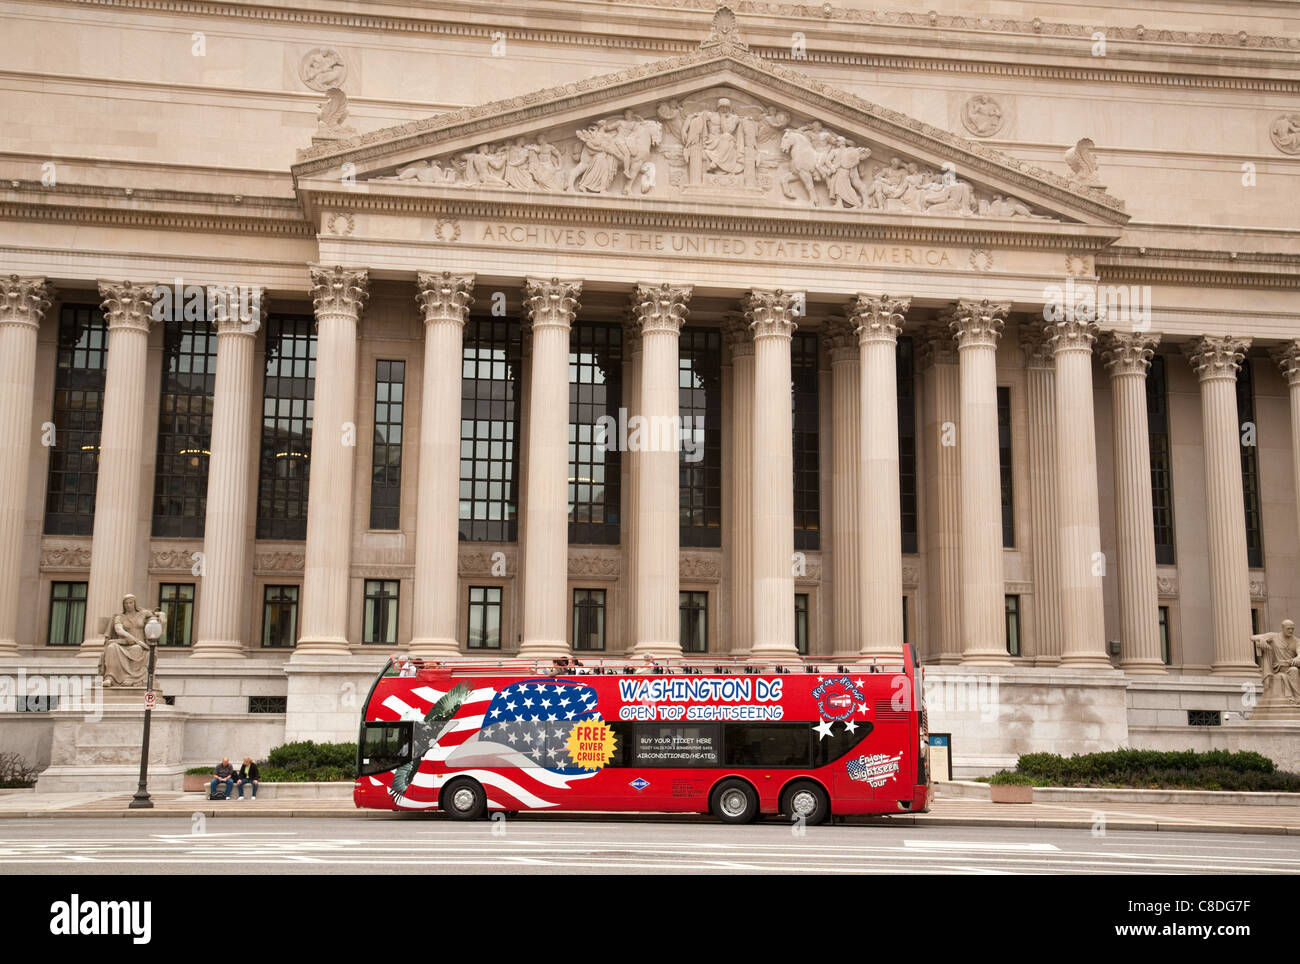 A Tour Bus Outside The National Archives Washington Dc